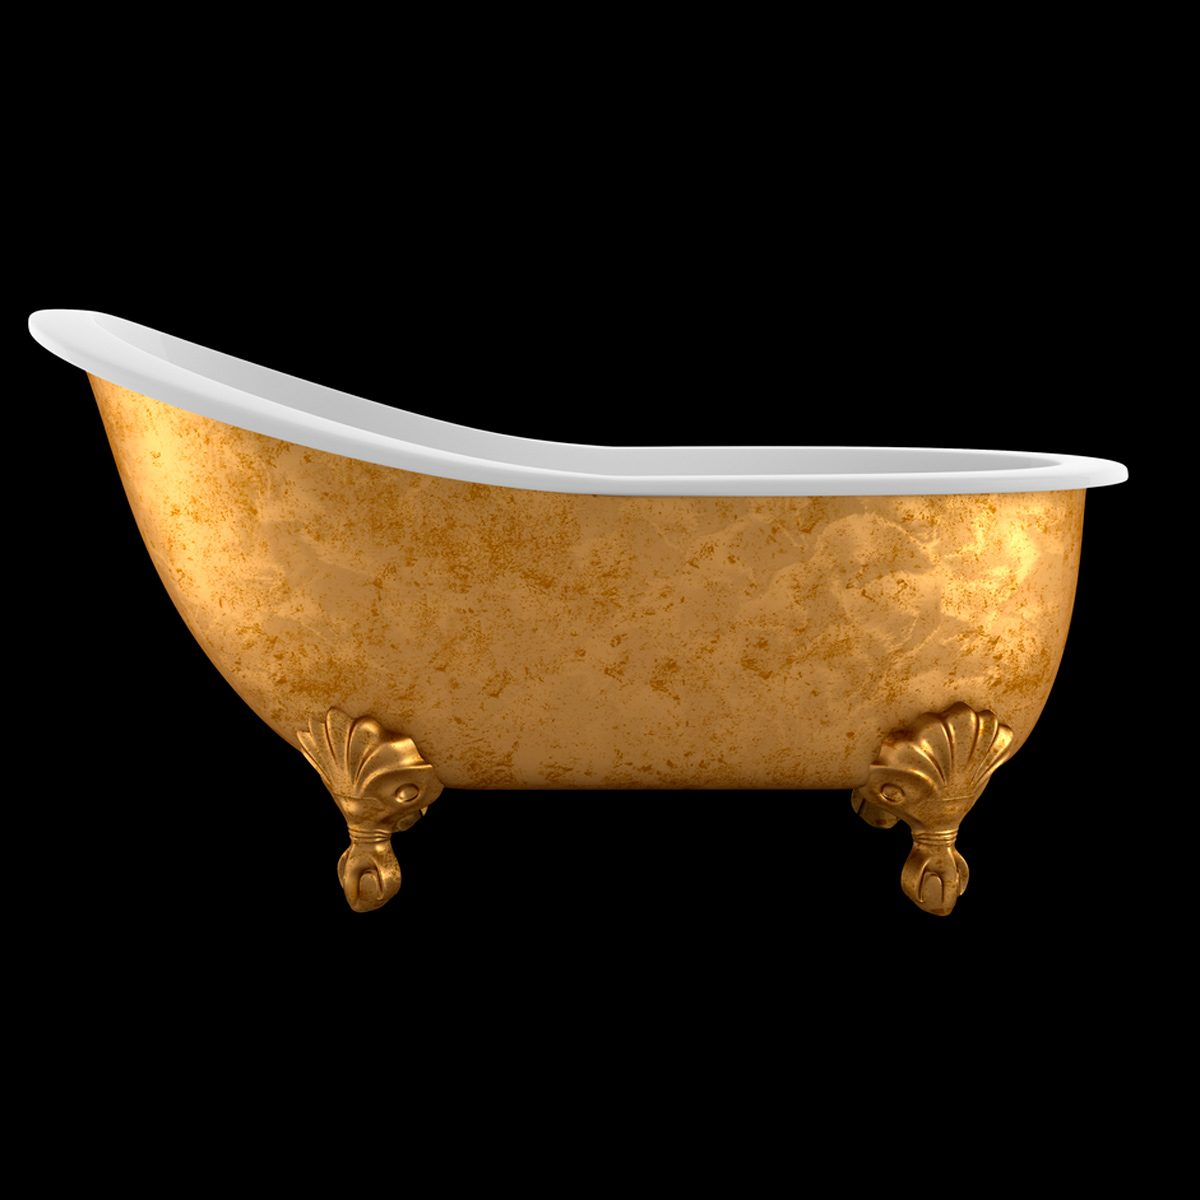 20 Of The Most Amazing Or Ridiculous Bathtubs You Ve